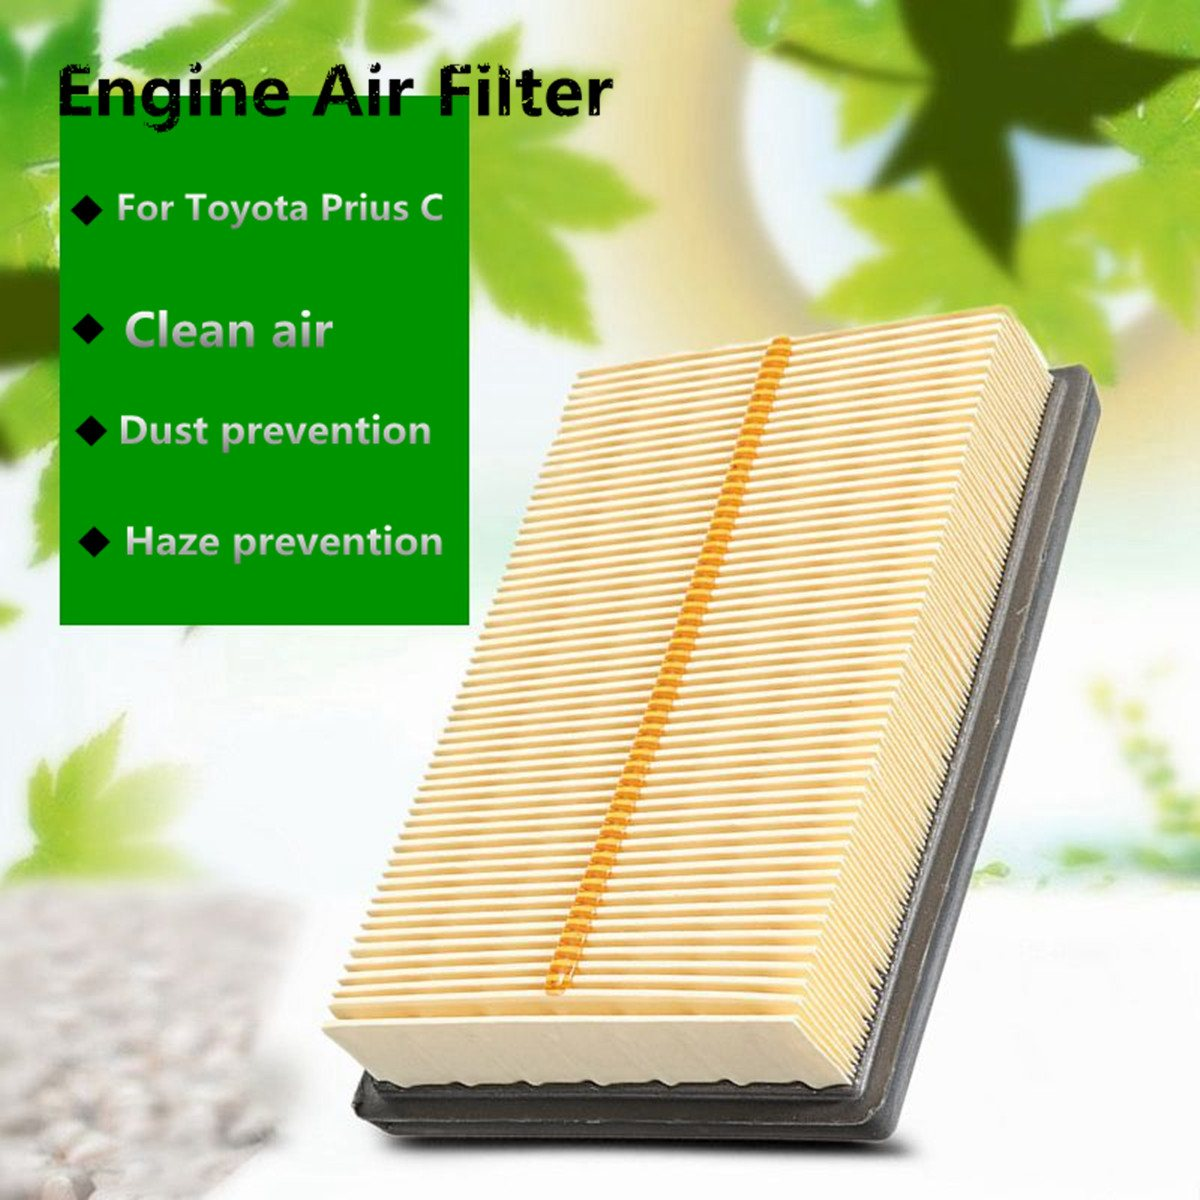 1Pc New Car Cabin Engine Air Filter For Toyota Prius C 2012-2014 17801-21060 20pcs lot aod484 d484 to 252 free shipping new ic